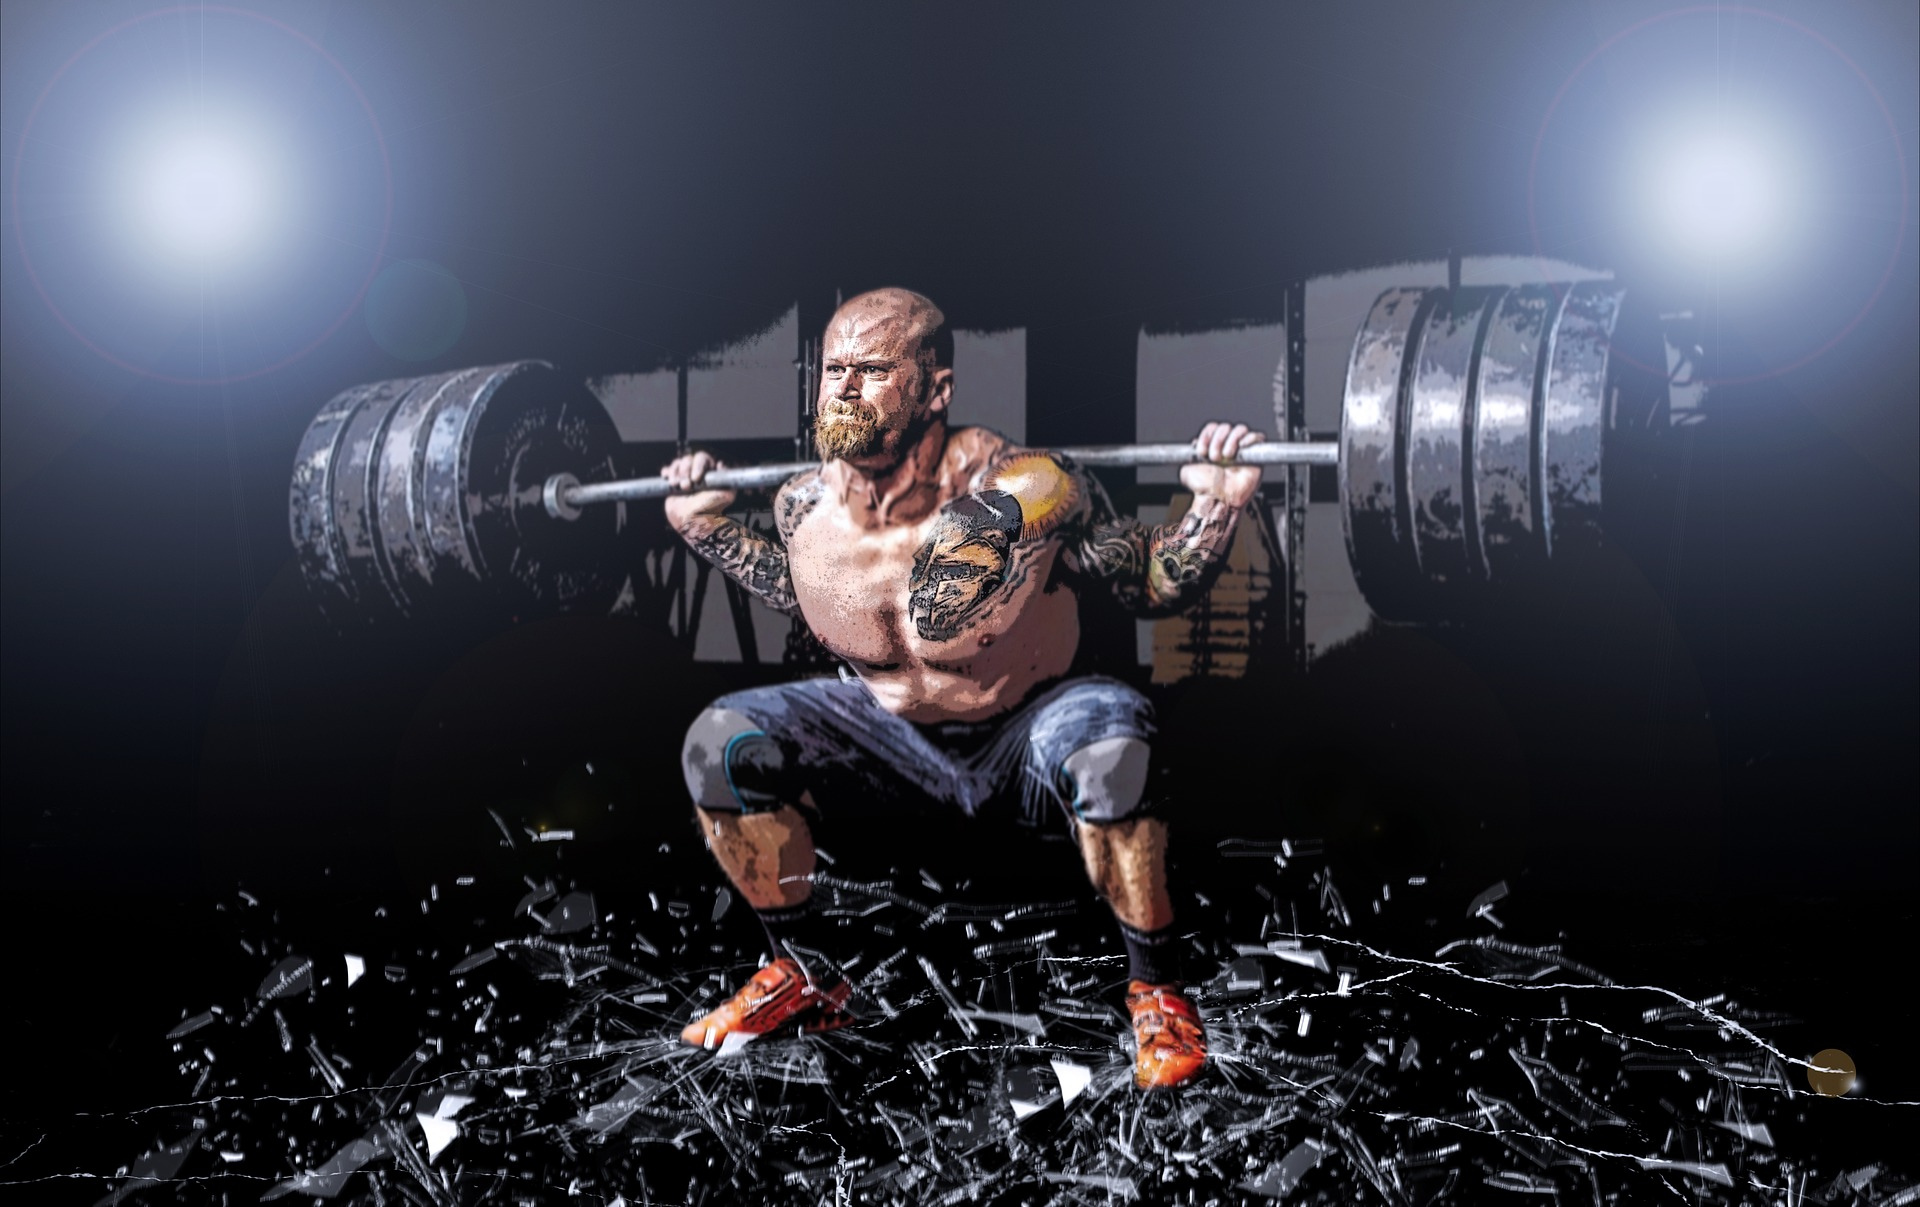 I don't know who this guy is but he's squatting on top of broken glass, so what's your excuse?